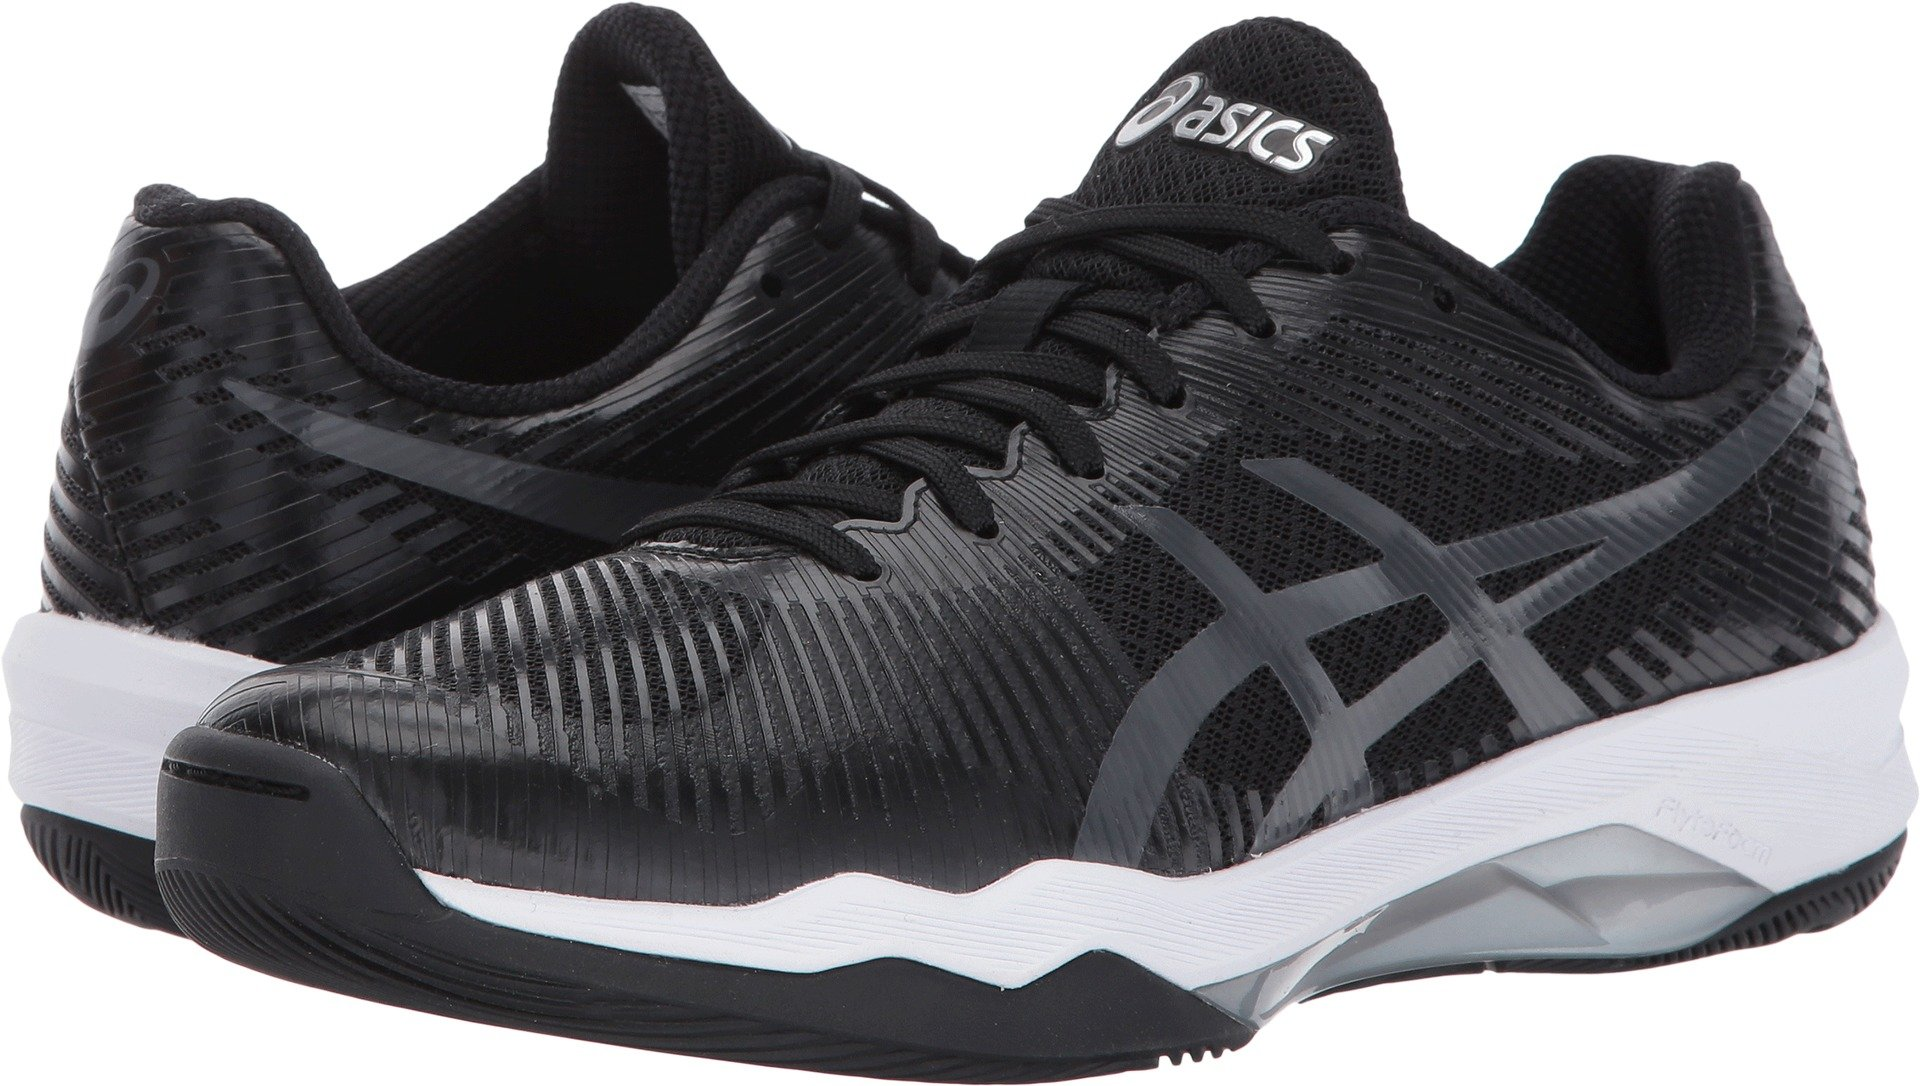 ASICS Women's Volley Elite FF Volleyball Shoe, Black/Dark Grey/White, 8 Medium US